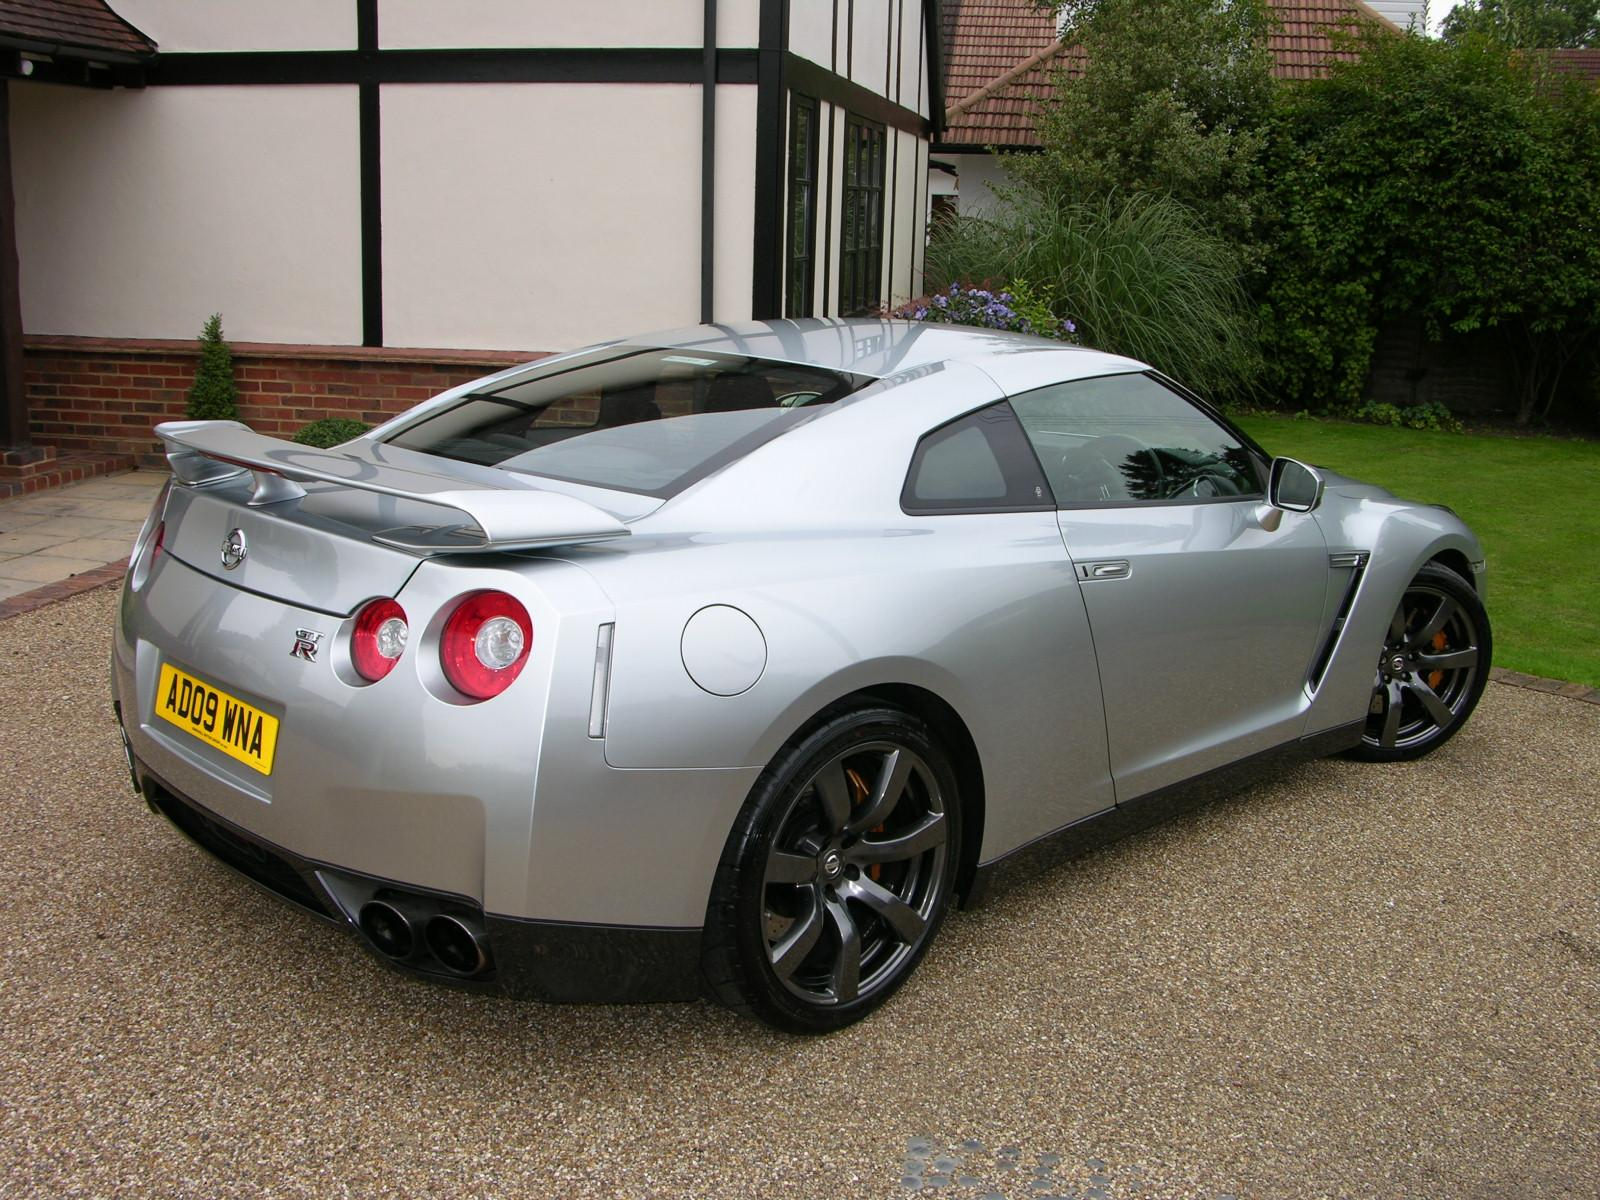 file:2009 nissan gt-r premium - flickr - the car spy (31)